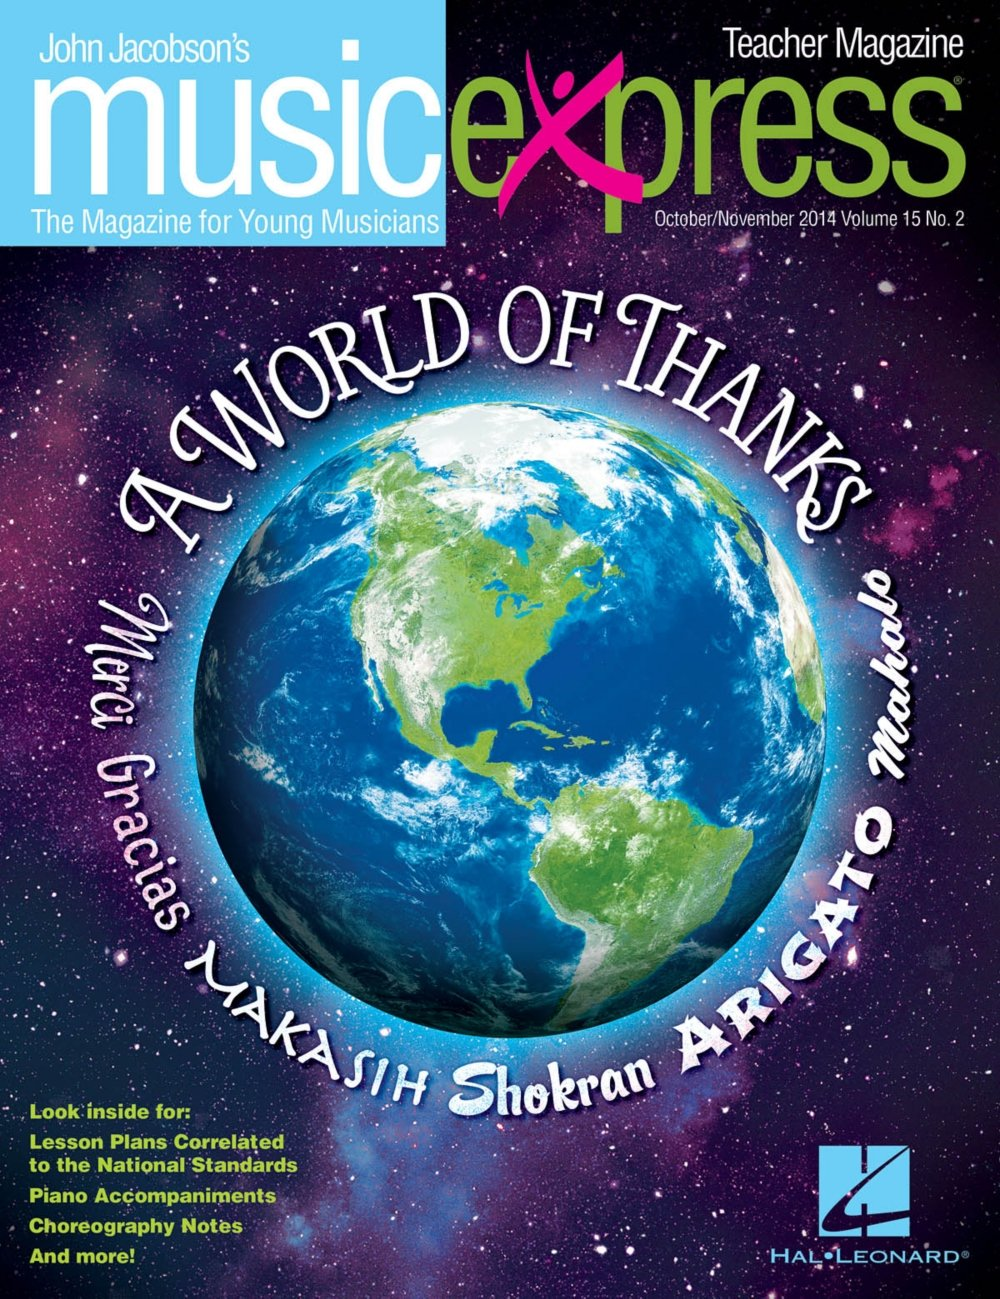 Hal Leonard A World of Thanks Vol. 15 No. 2 (October/November 2014) PREMIUM COMPLETE PAK Composed by John Jacobson PDF